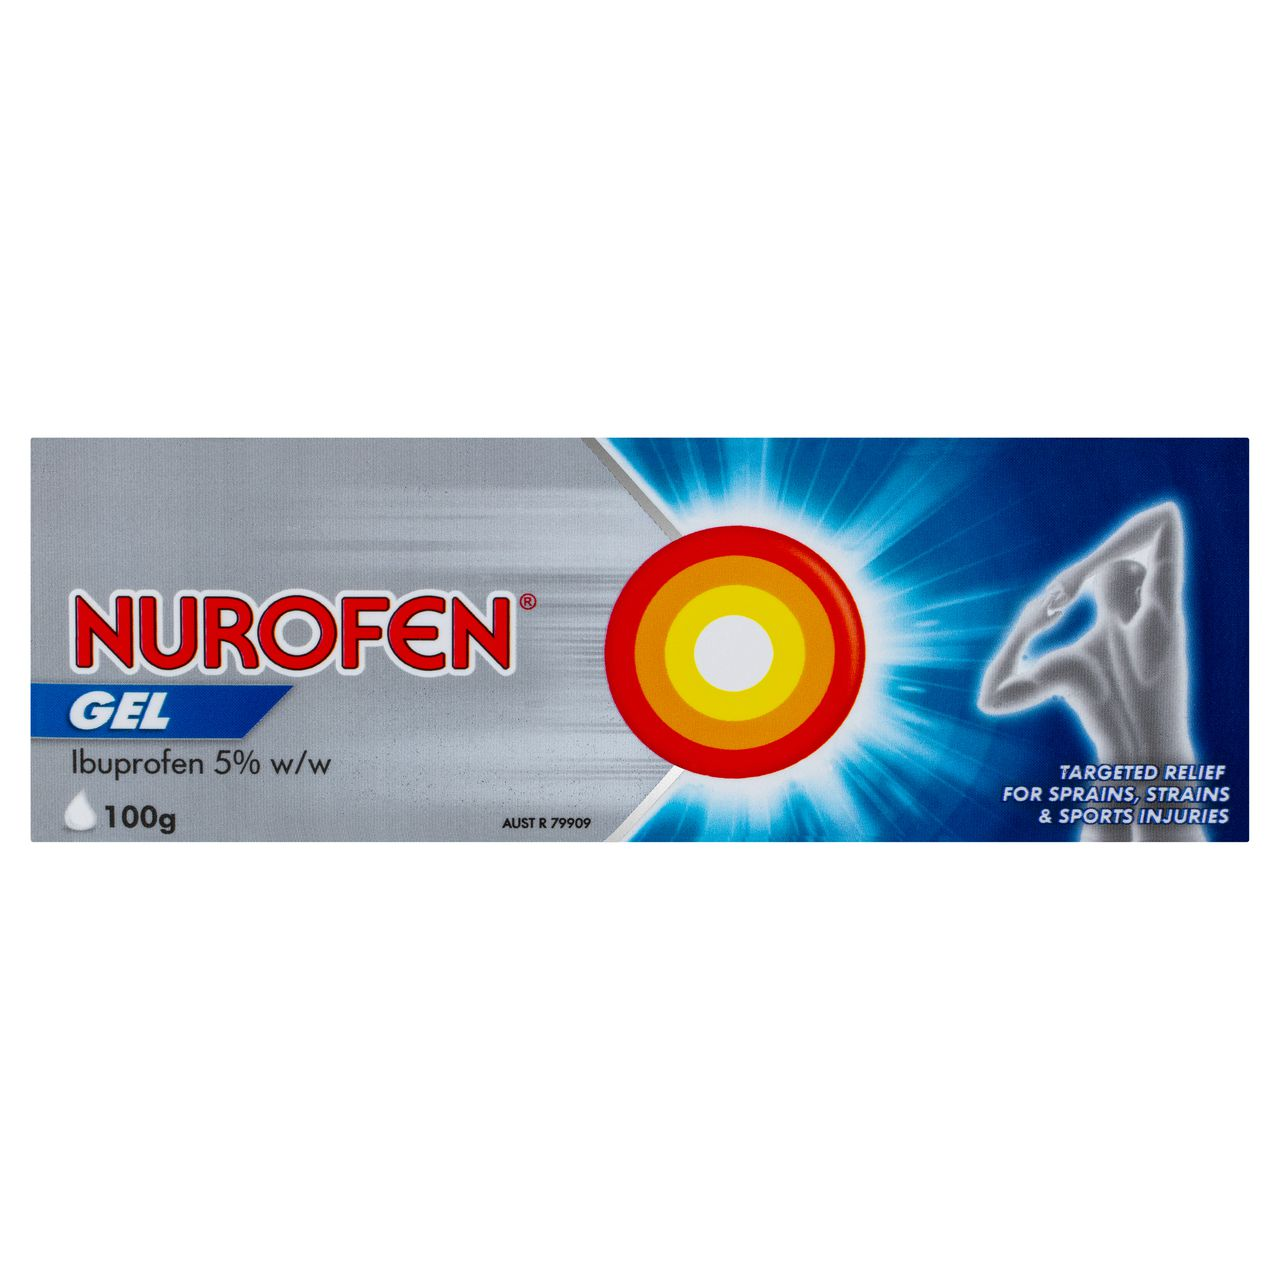 Thumbnail for Nurofen Gel 100g